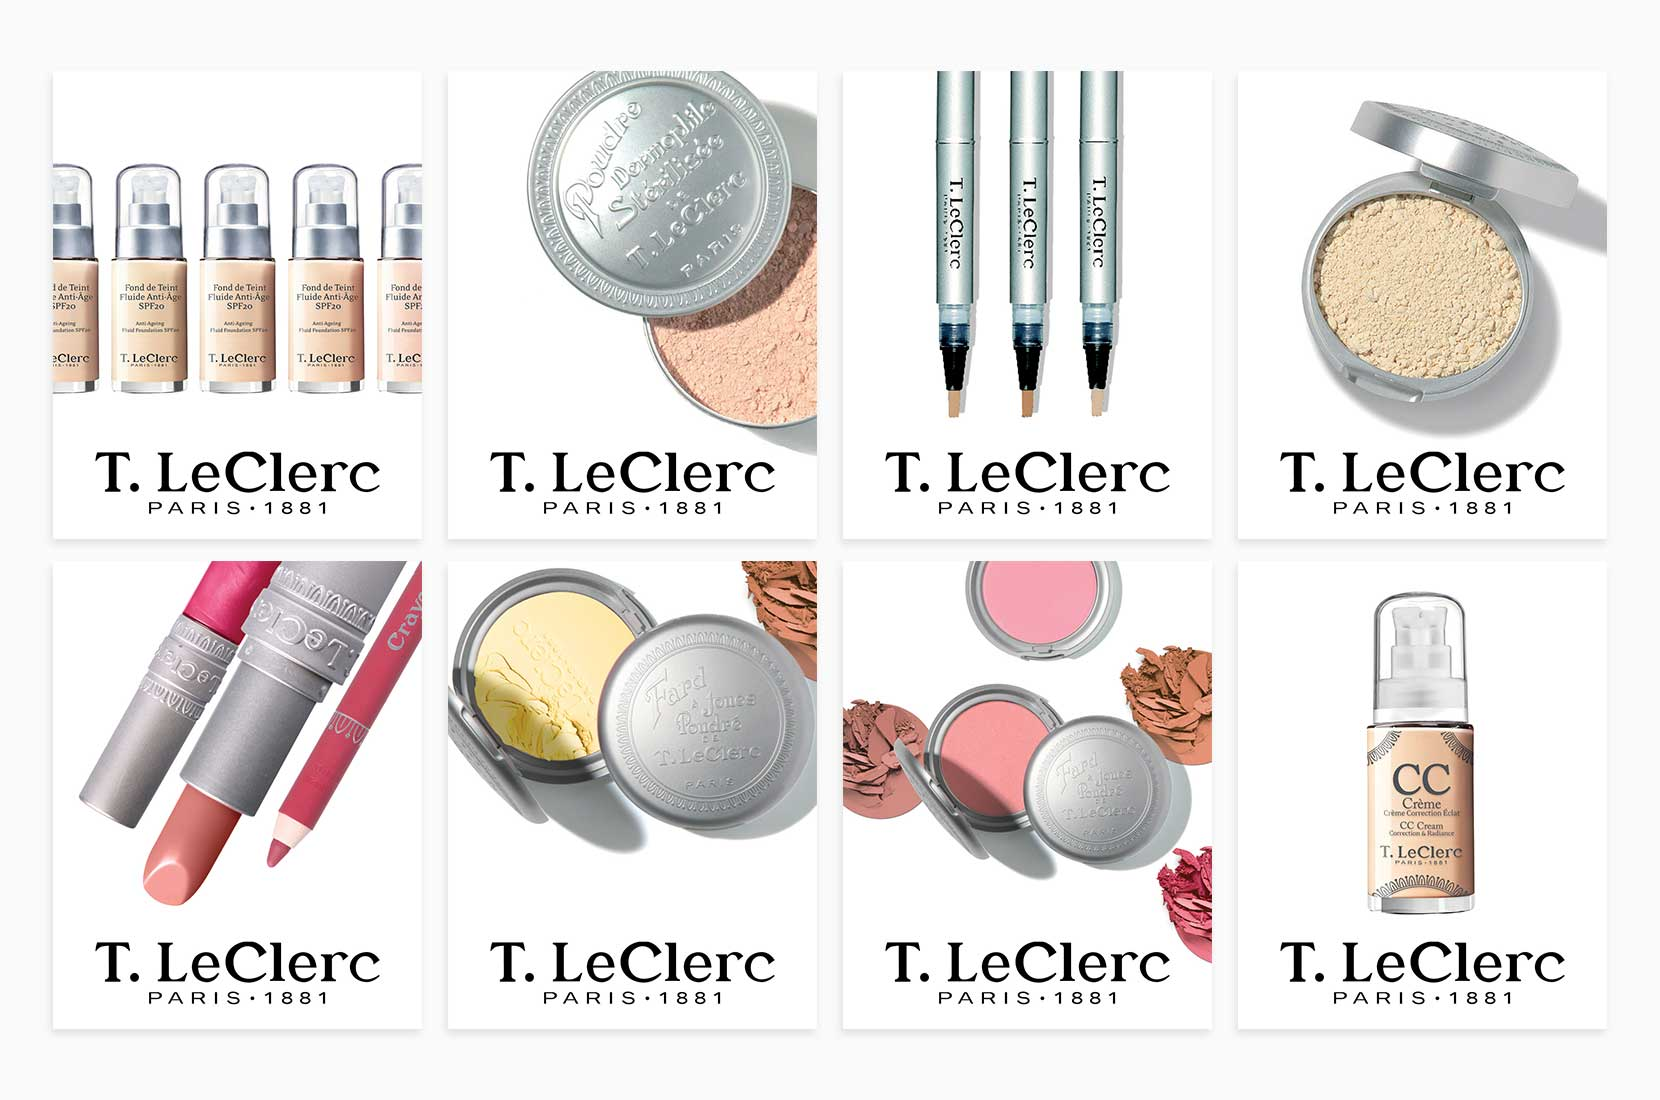 T. LeClerc Makeup Cards